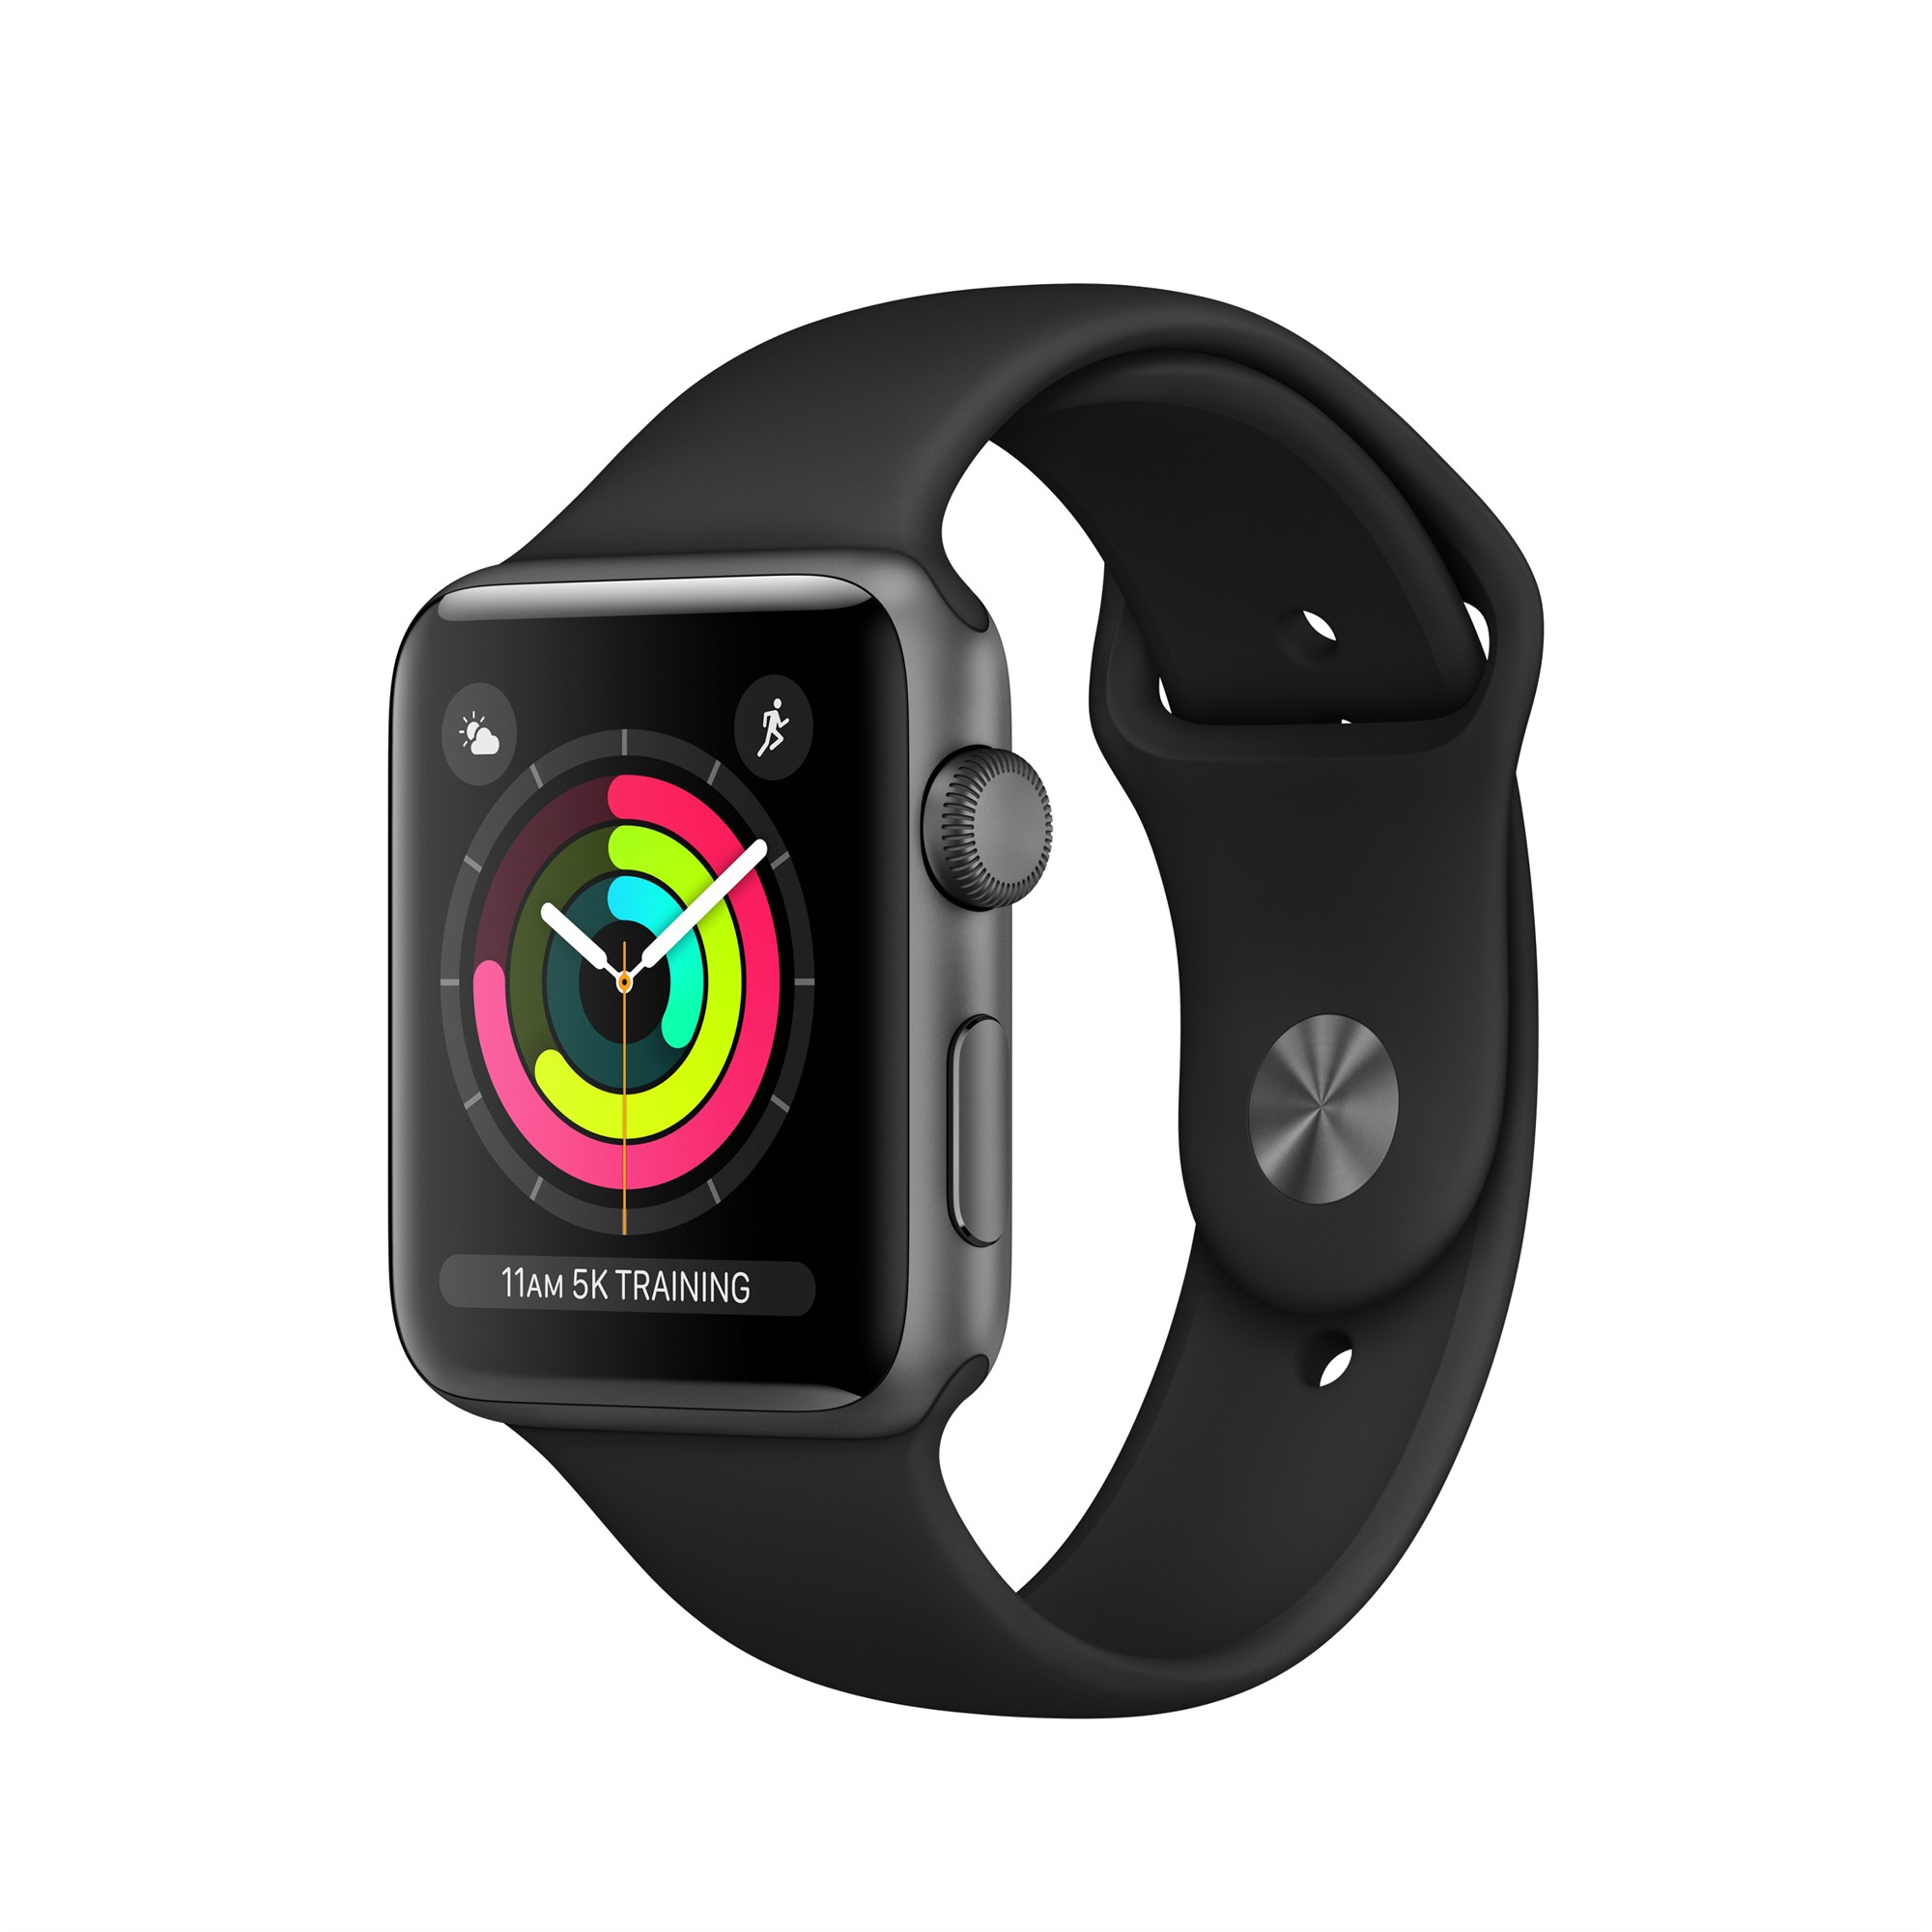 APPLE WATCH SERIES 3 OLED GPS (SATELLITE) GREY SMARTWATCH